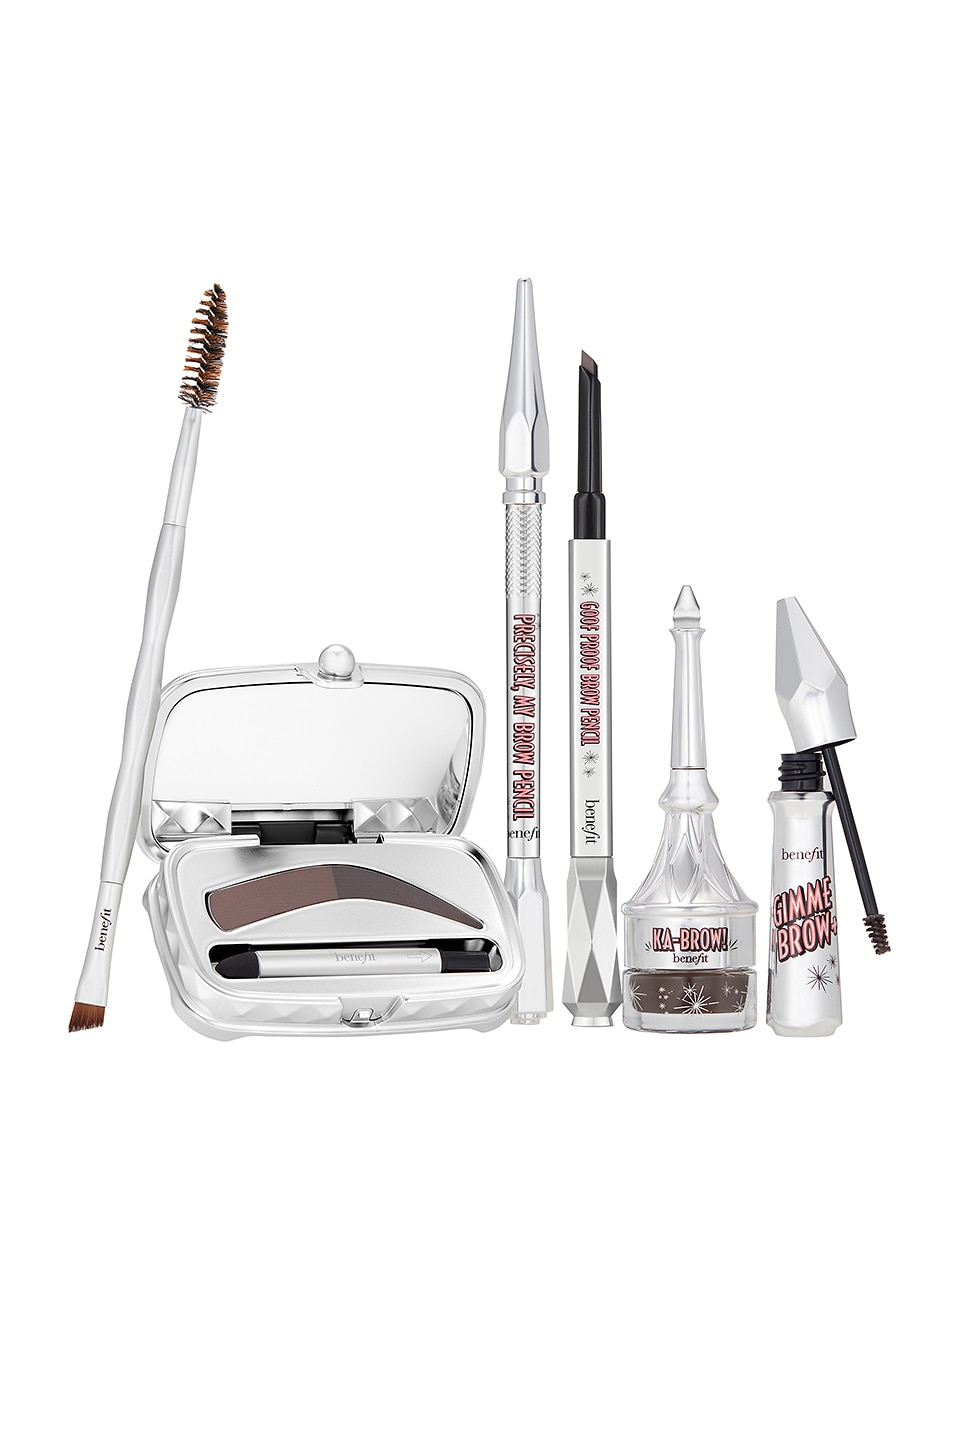 Benefit Cosmetics Magical Brow Stars! Blockbuster Brow Set in Shade 5